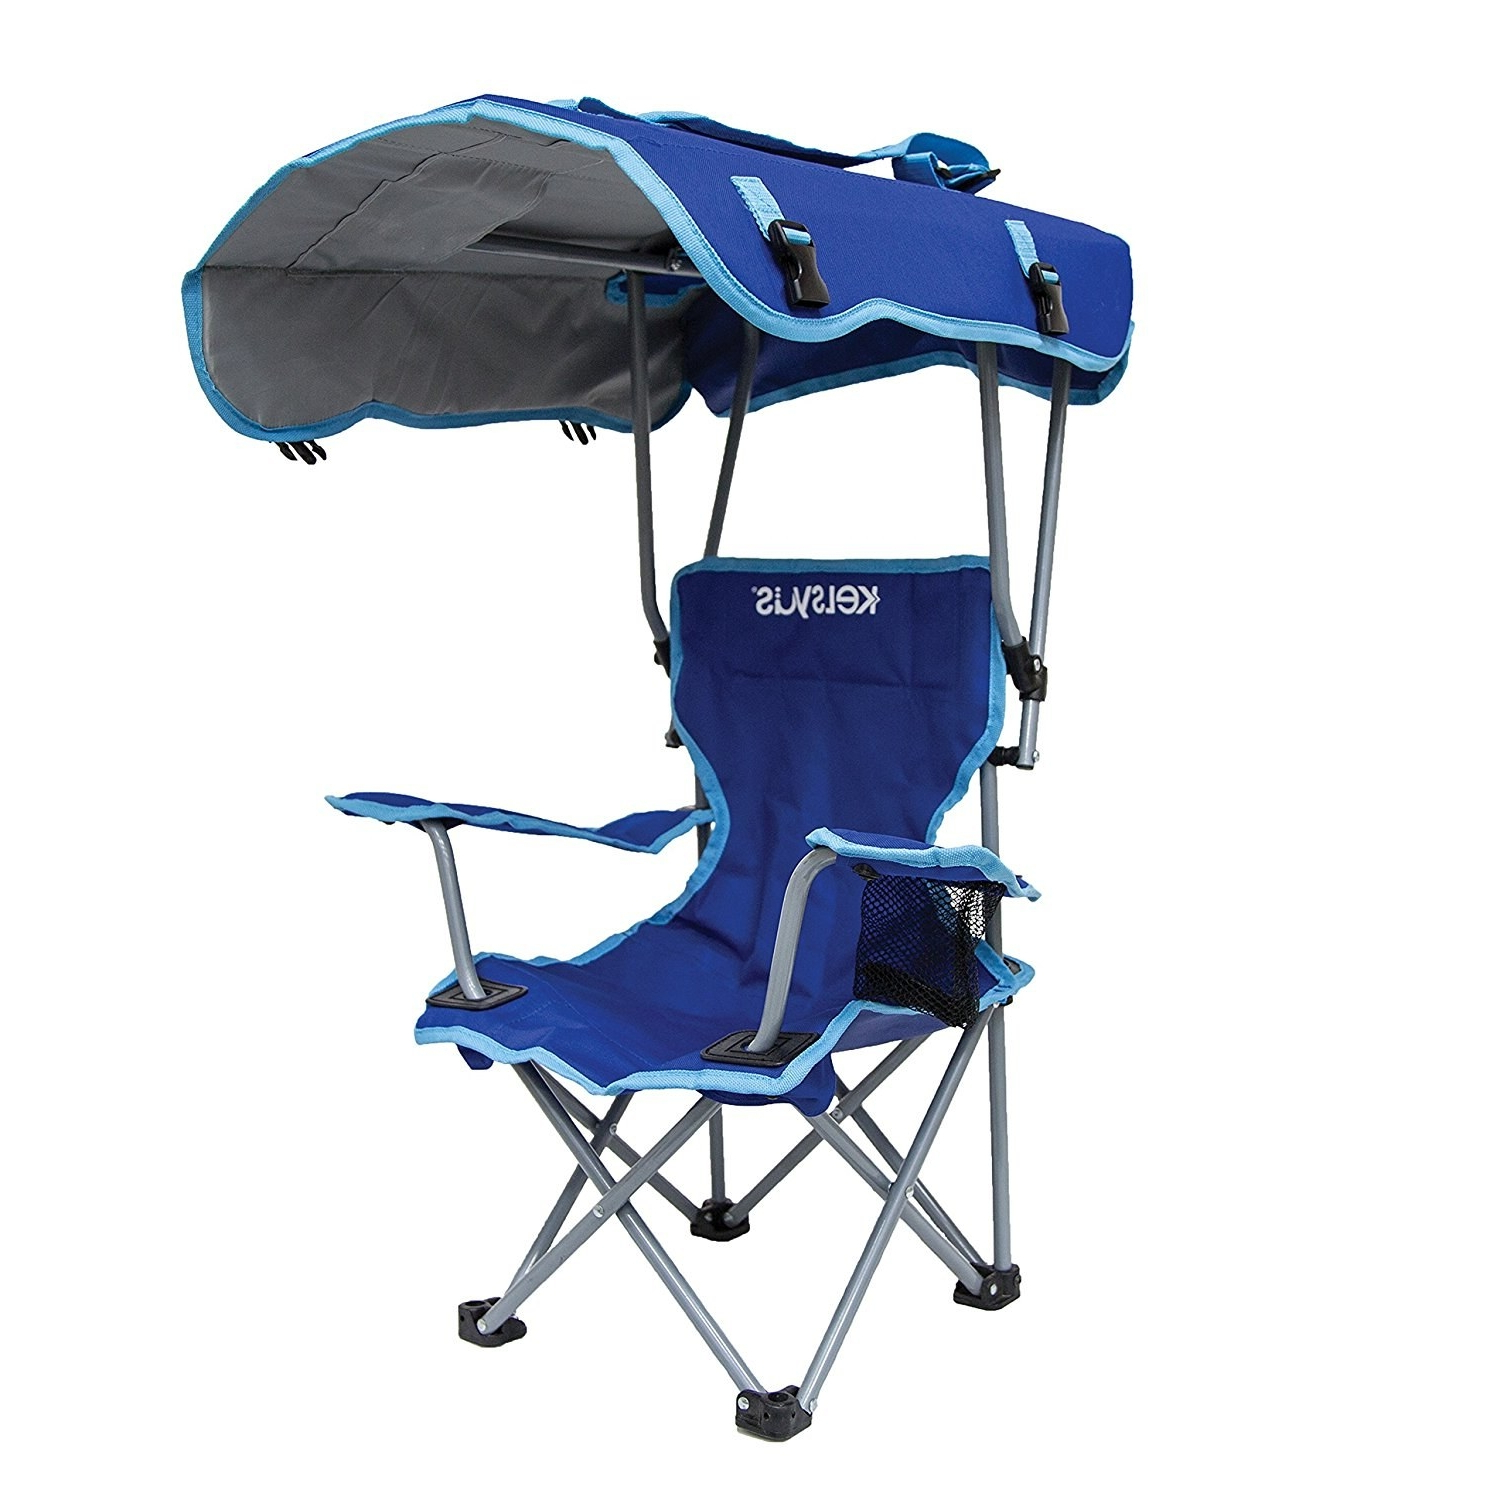 13 Of The Best Beach Chairs You Can Get On Amazon In Popular Folding Patio Lounge Beach Chairs With Canopy (View 18 of 25)